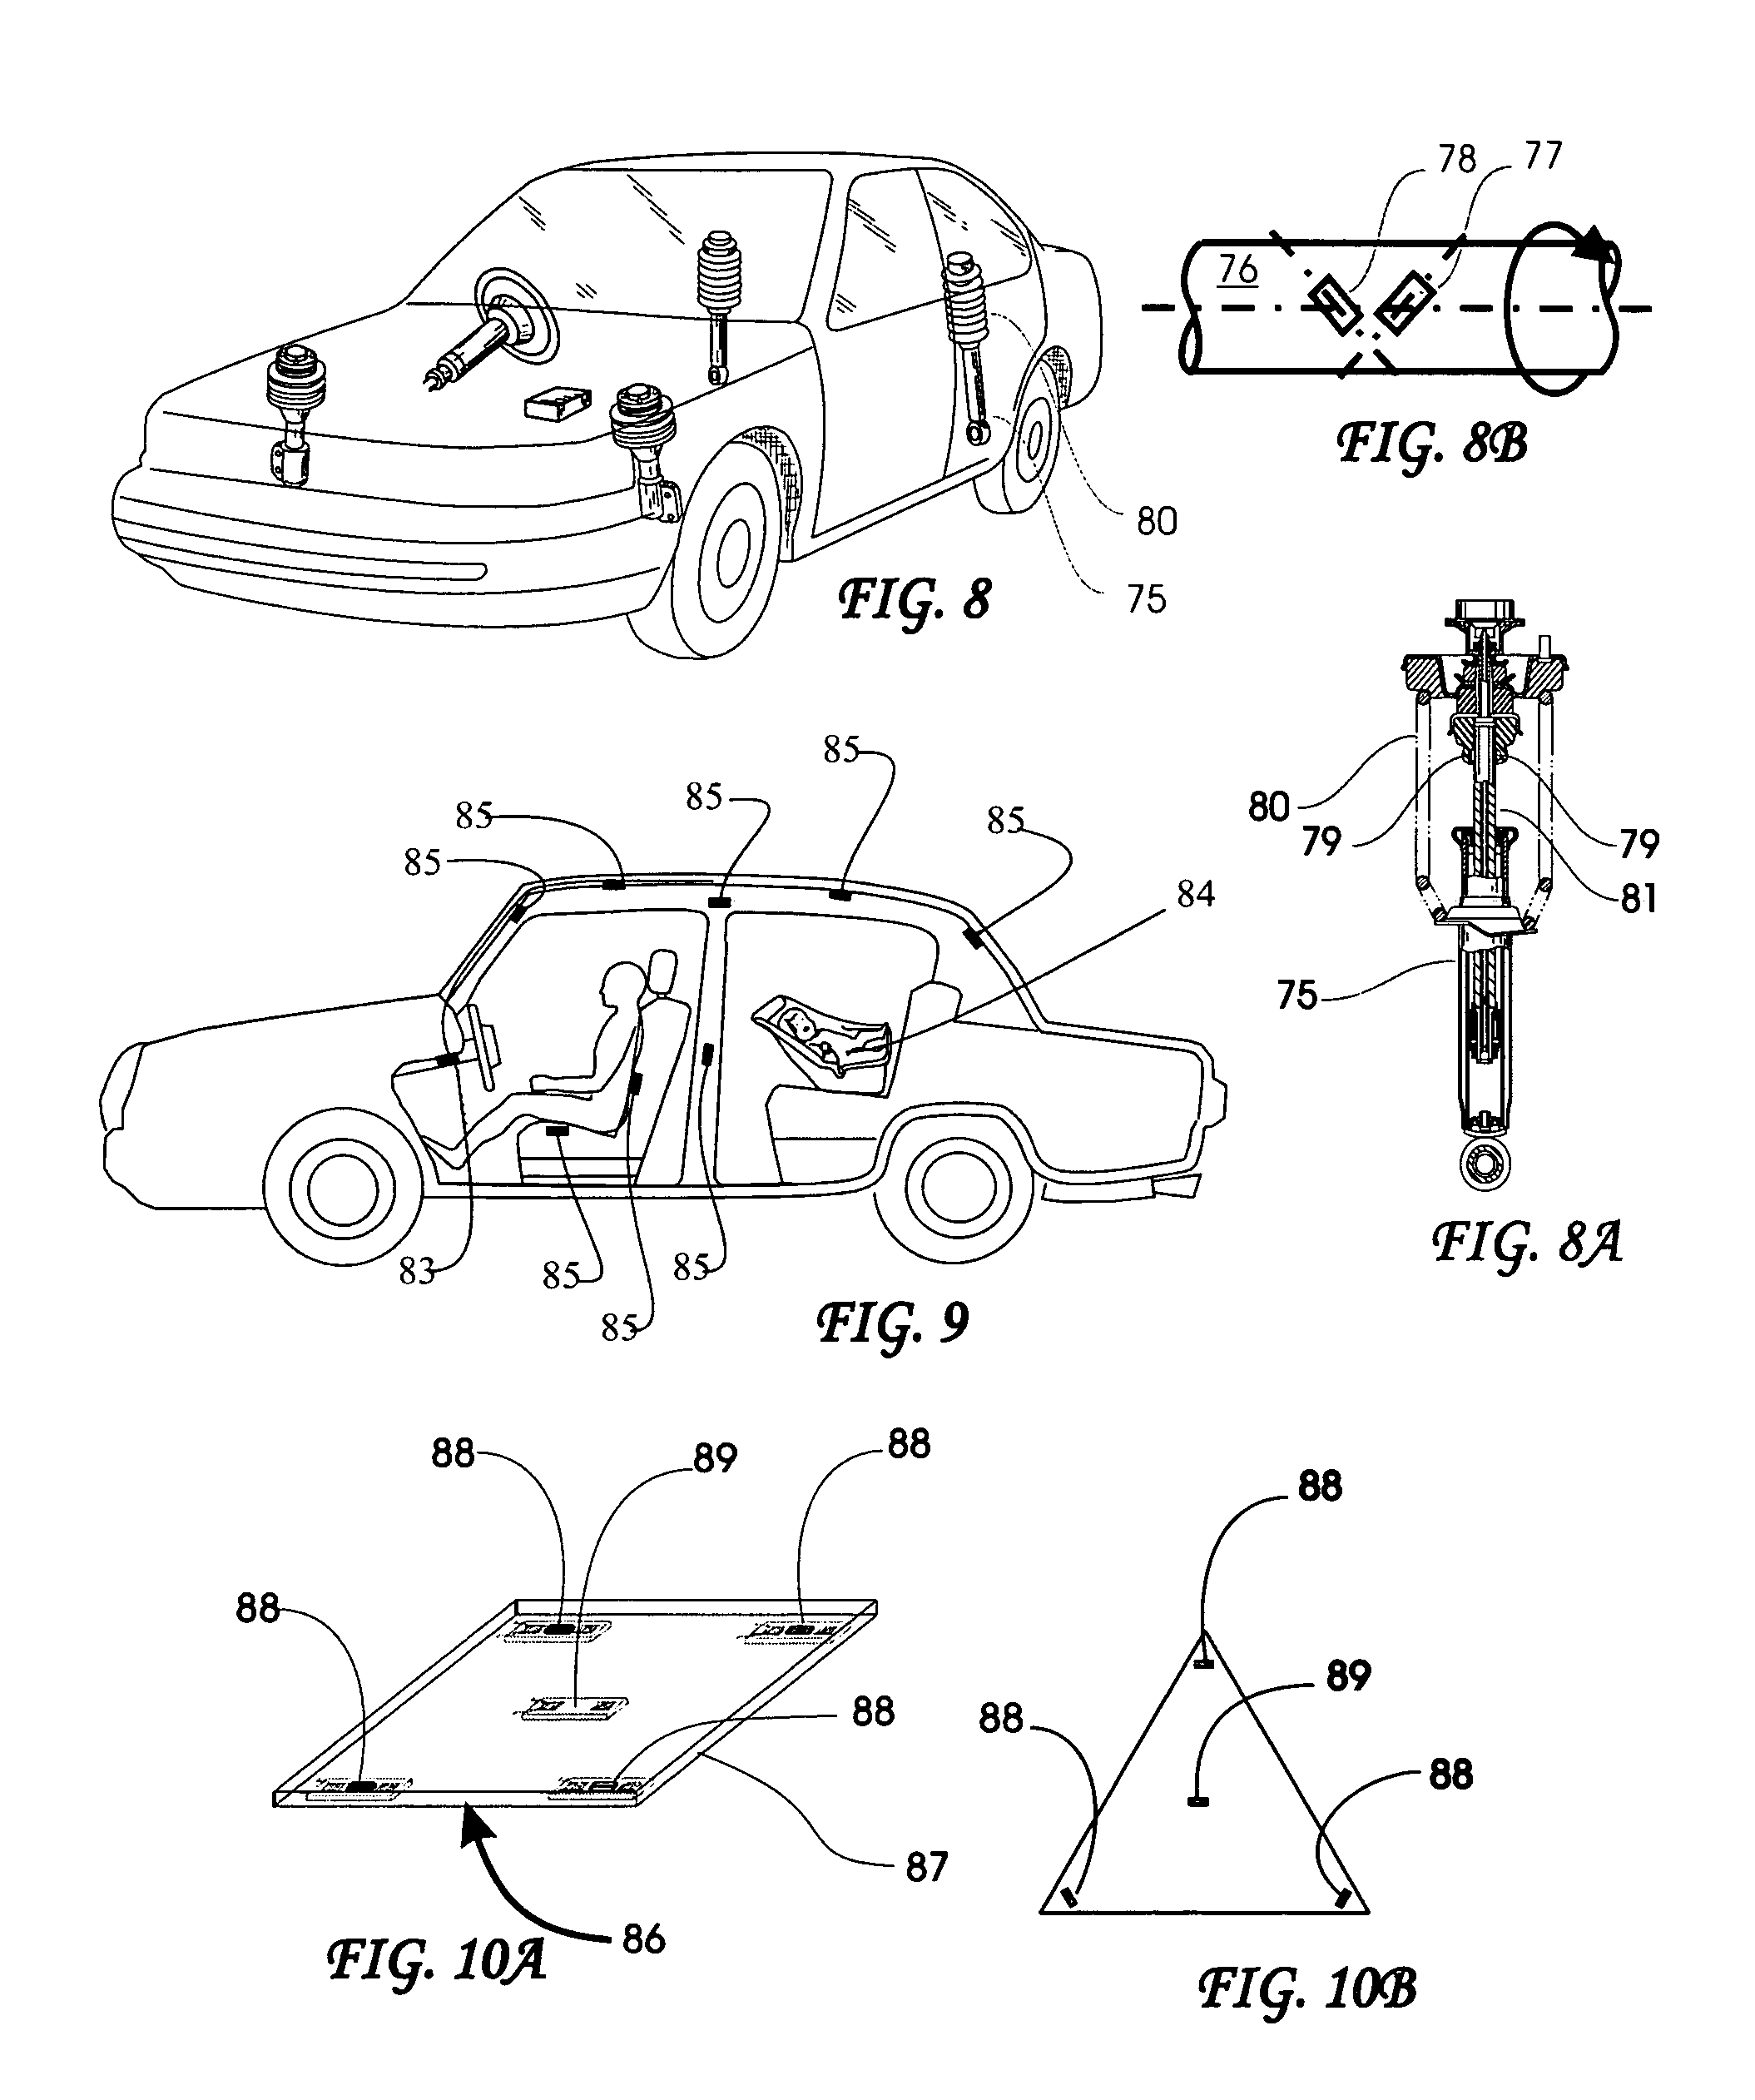 patent us 7 408 453 b2 Hillbilly Car Repair patent